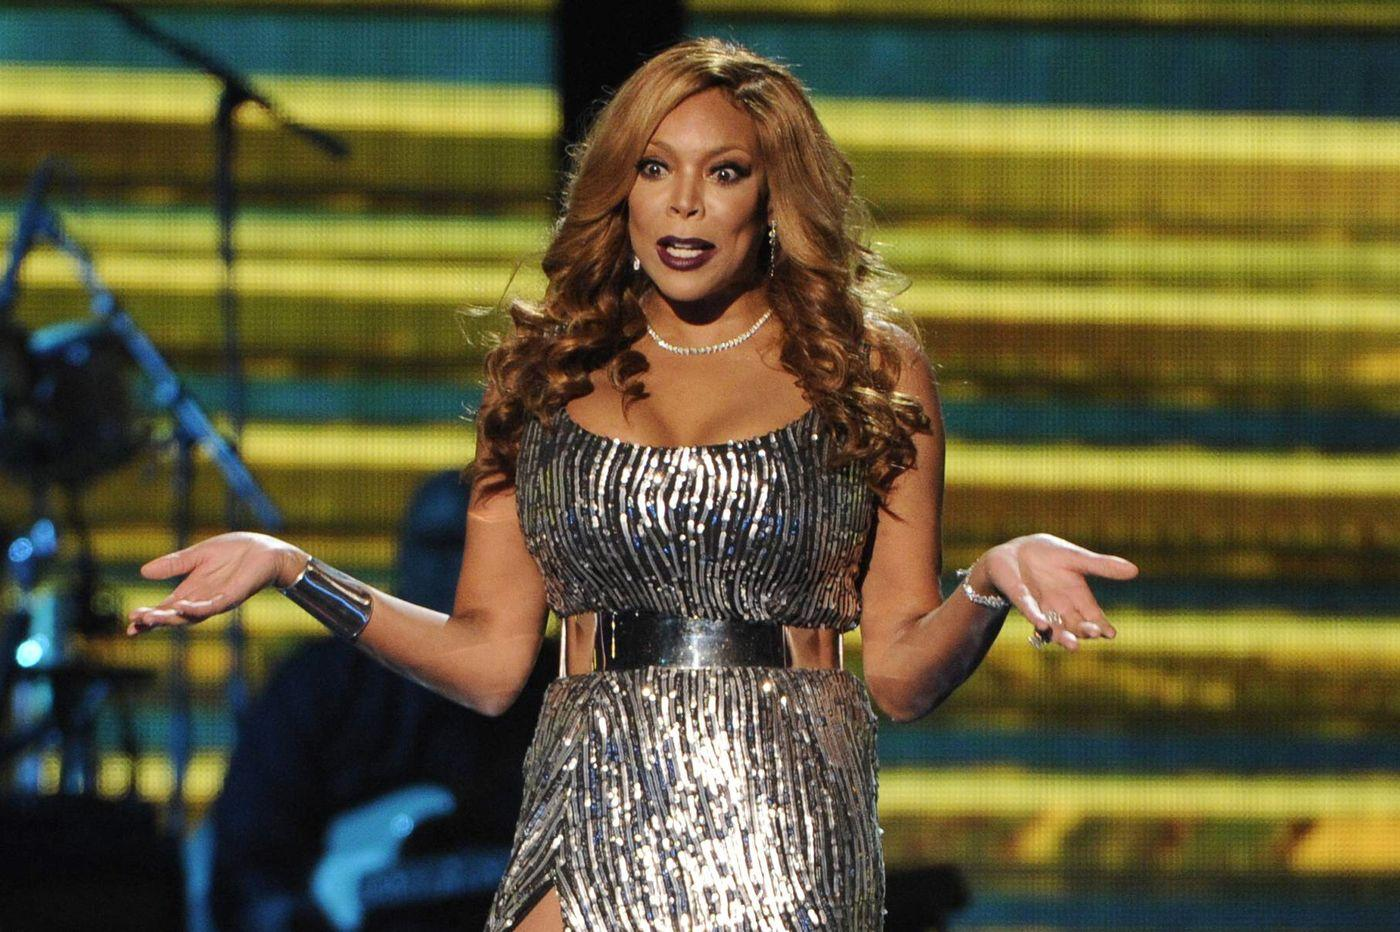 """Wendy Williams Shades Kevin Hunter On Her Show: """"My Diaper Changing Days Are Over!"""""""